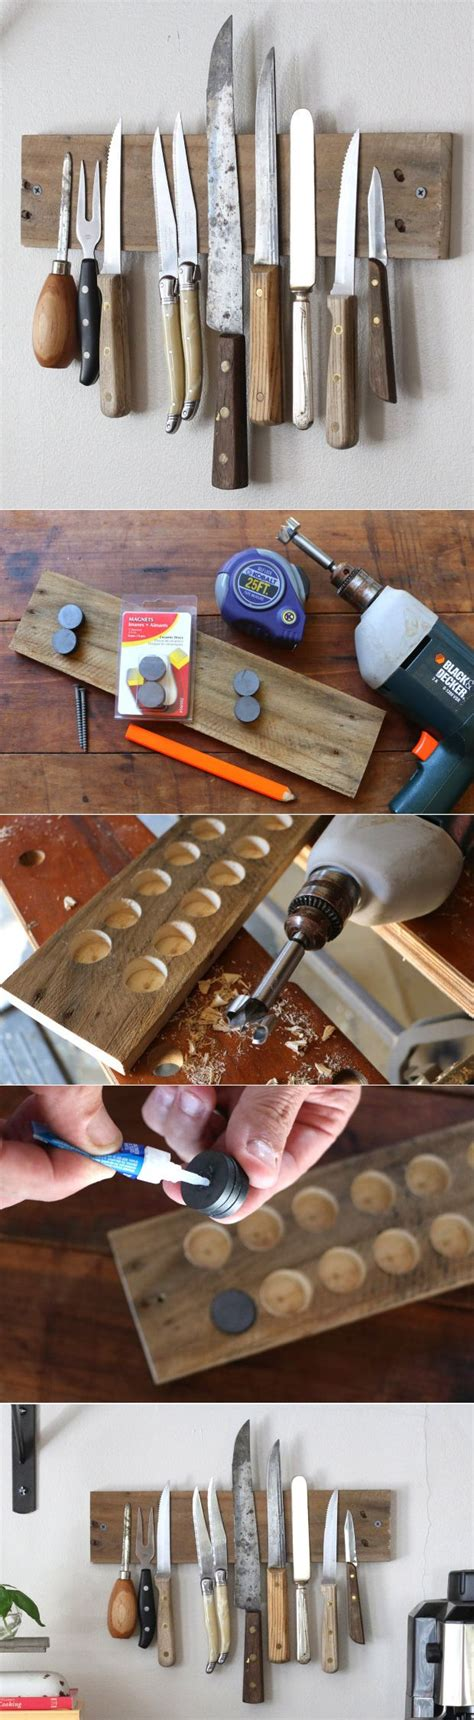 another bright idea safe kitchen knife storage so cool a diy magnetic wall display in your kitchen of